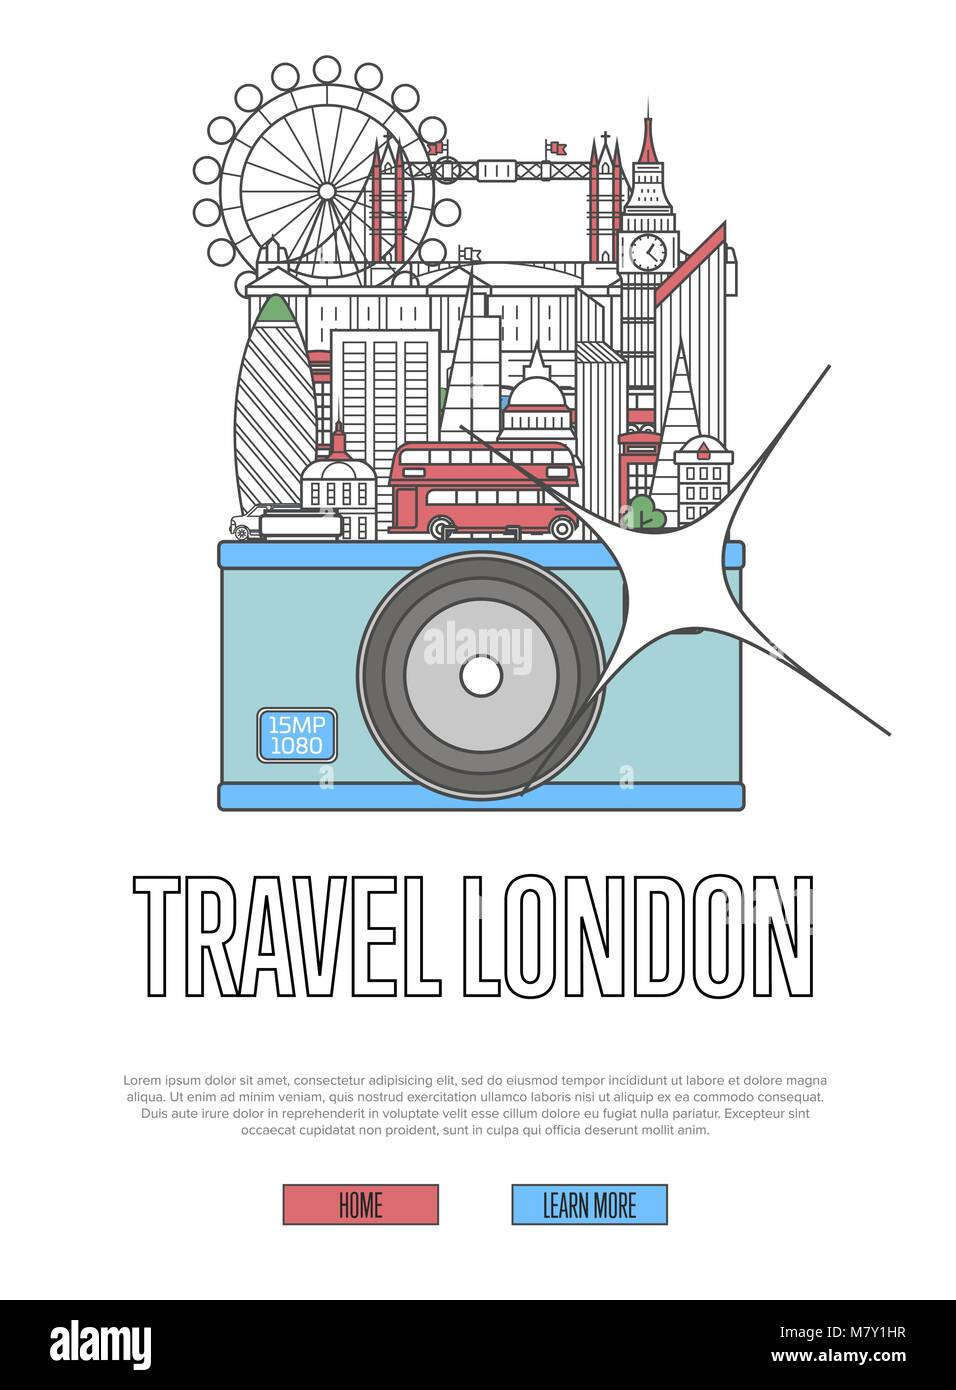 Travel London poster with camera - Stock Image